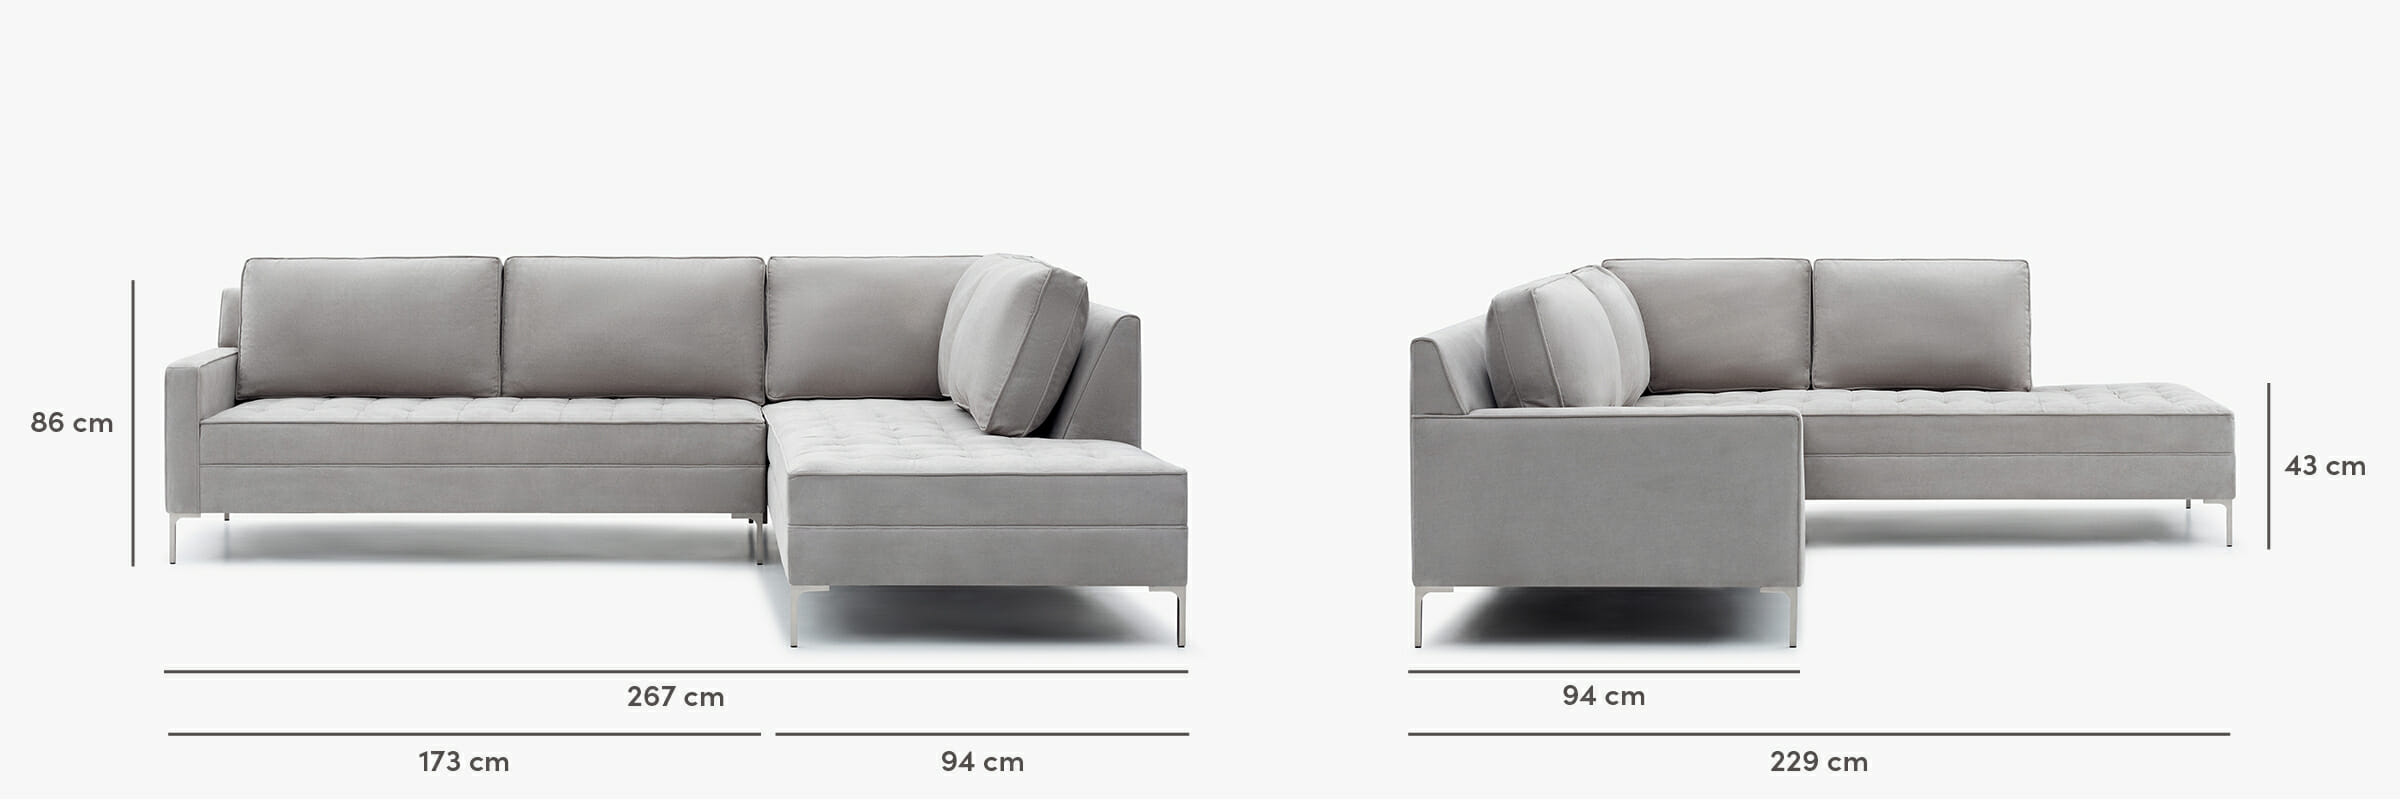 Hudson sectional dimensions